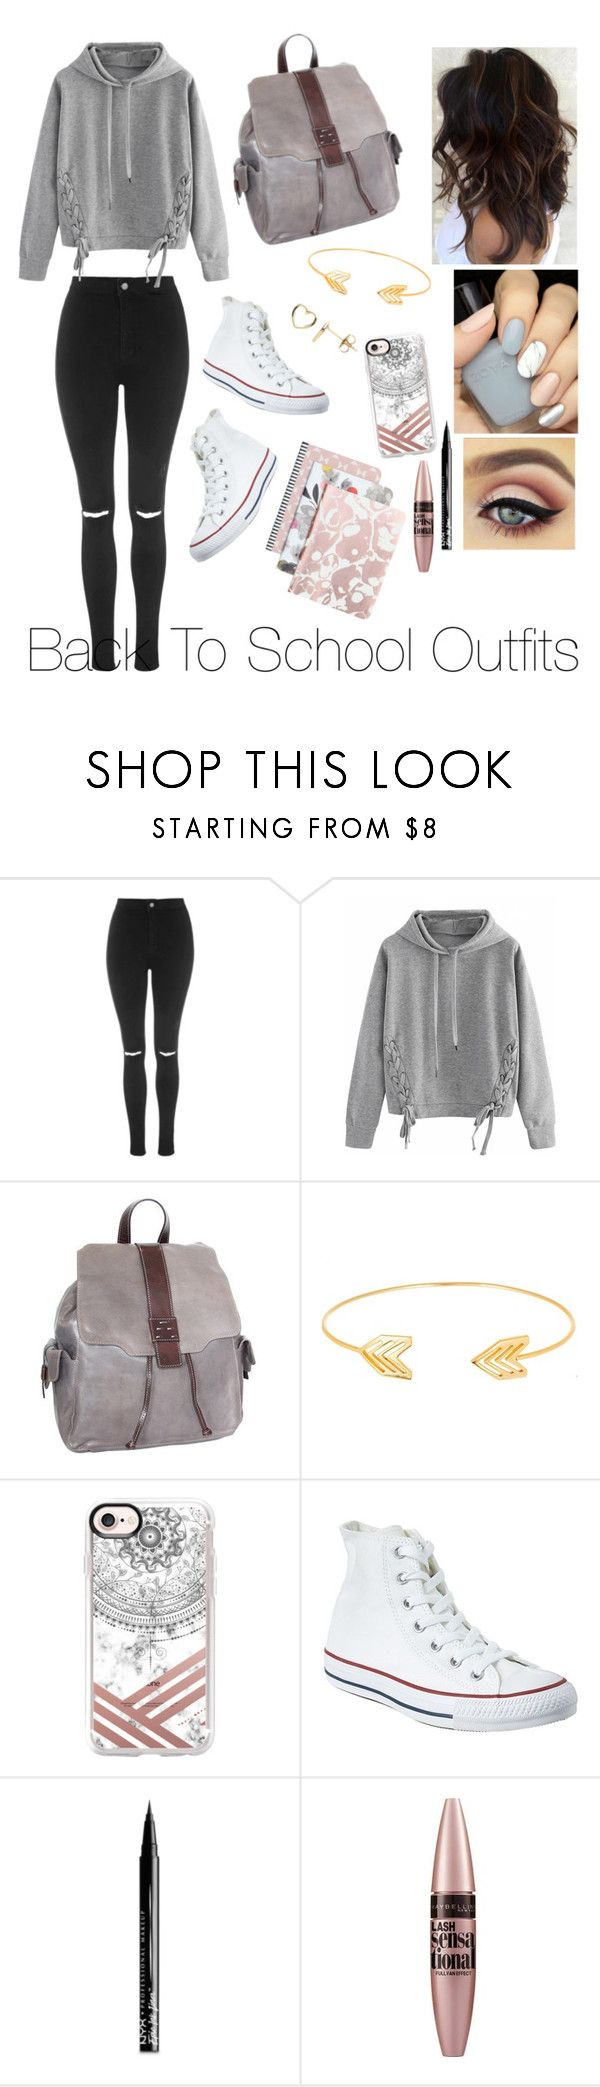 """""""Back To School Outfits #45"""" by gussied-up on Polyvore featuring Topshop, WithChic, Nino Bossi Handbags, Lord & Taylor, Casetify, Converse, NYX, Maybelline and Estella Bartlett"""